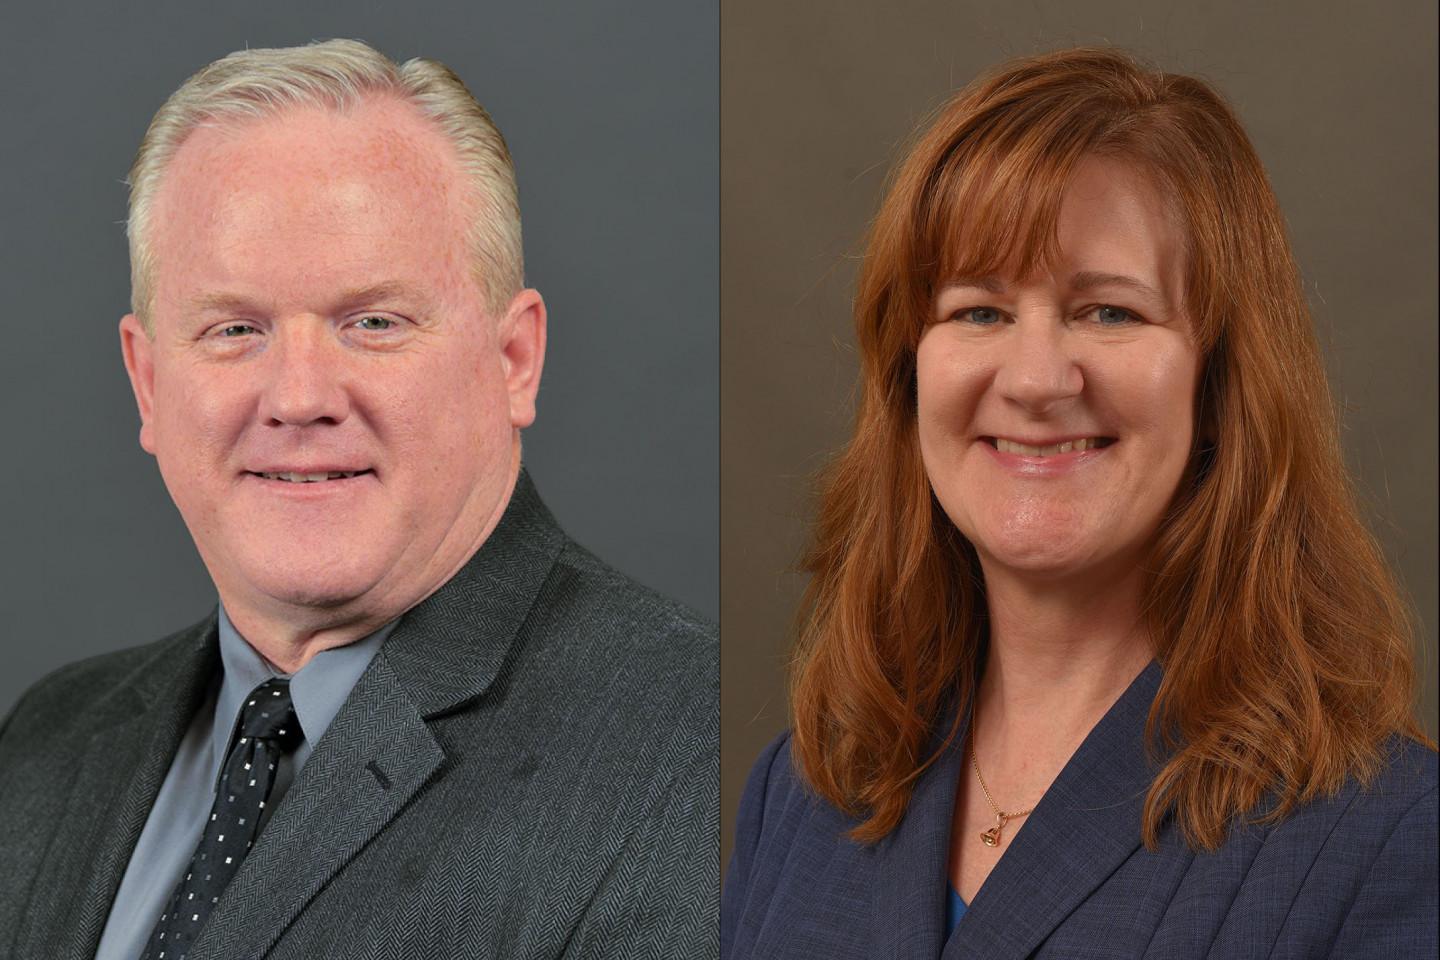 Dr. Steven Butt and Dr. Christine Byrd-Jacobs.